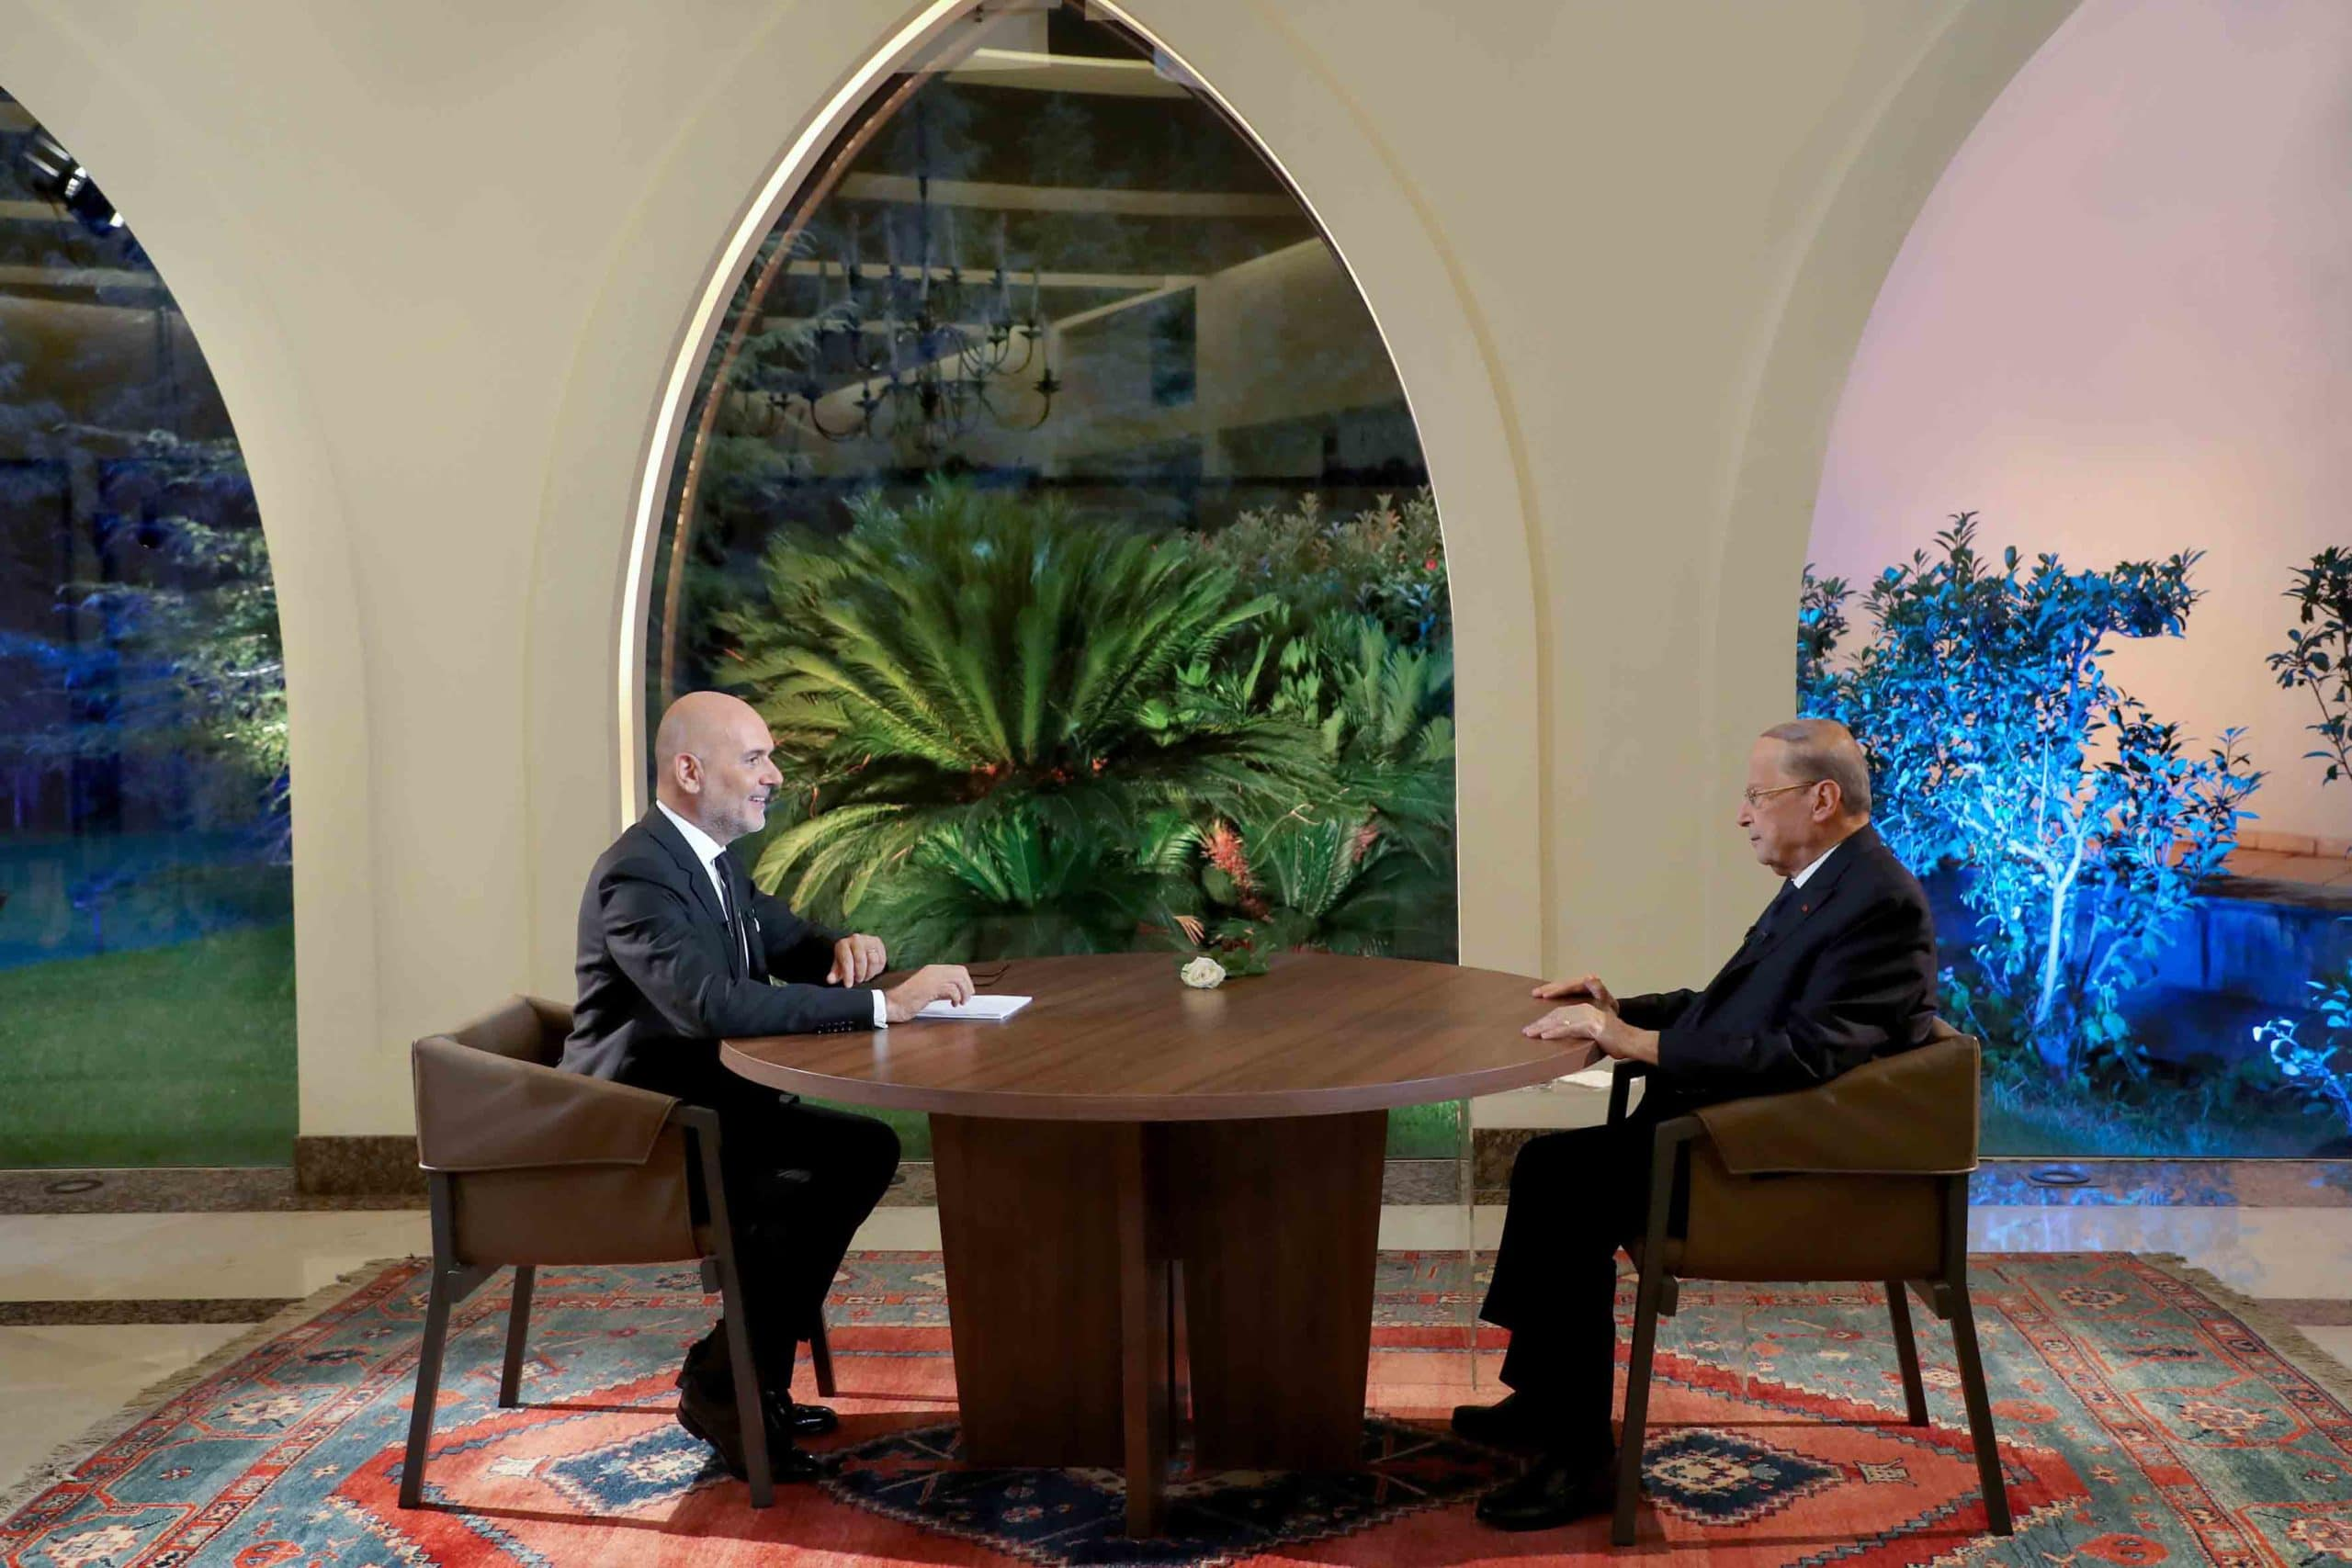 Dalati Interview Ofthe Pr.michel Aoun On The Occasion Of Centenary Of The Great Lebanan With Mr. Rikardo Karam Scaled